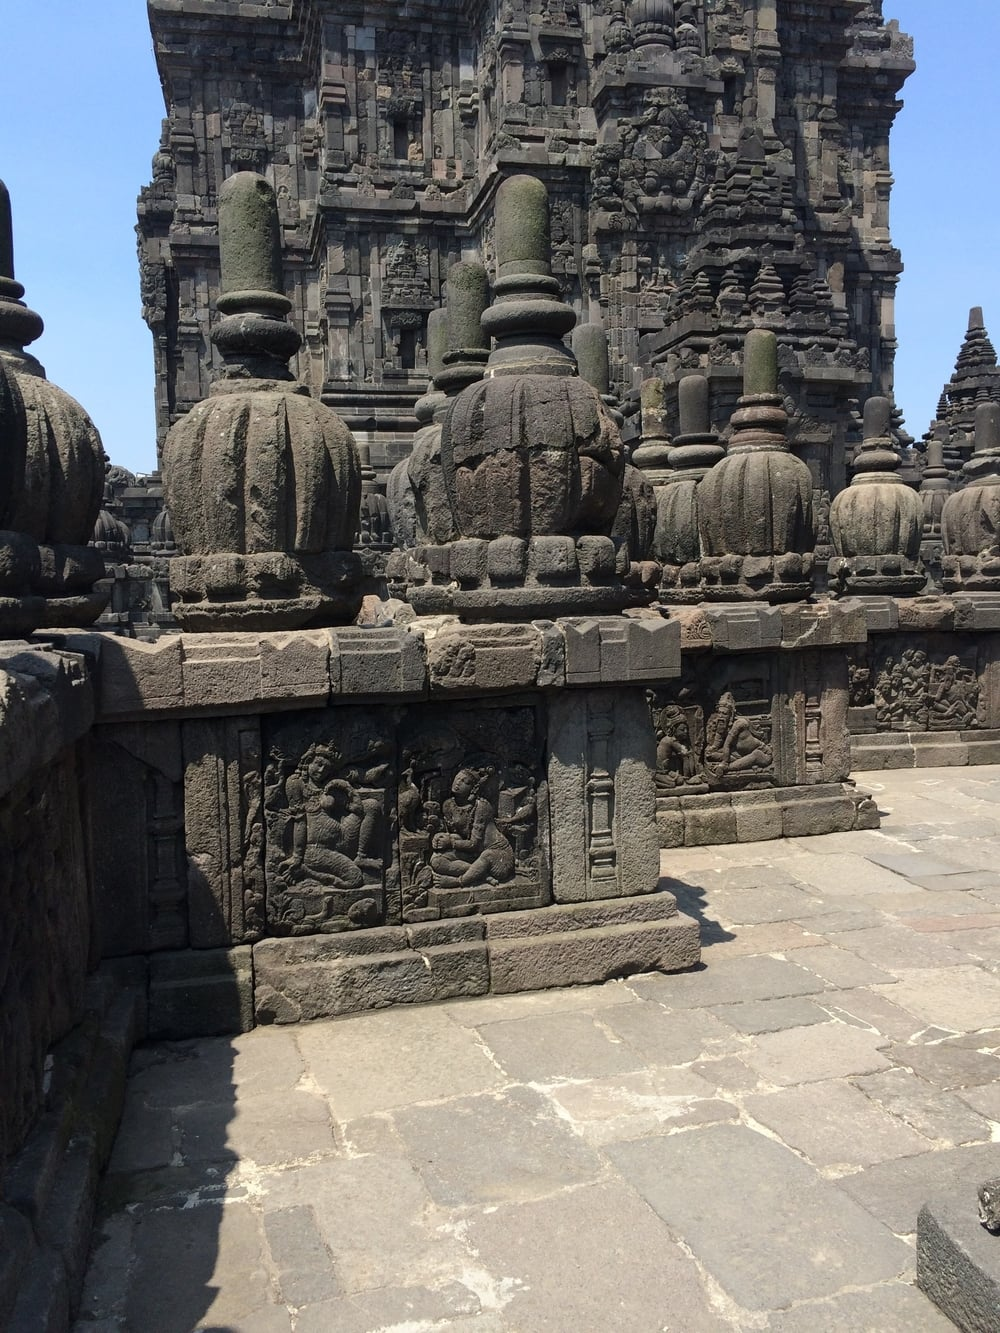 The Ramayana Epic (which i LOVE) is carved in the stone around Brahma and Shiva's temples.